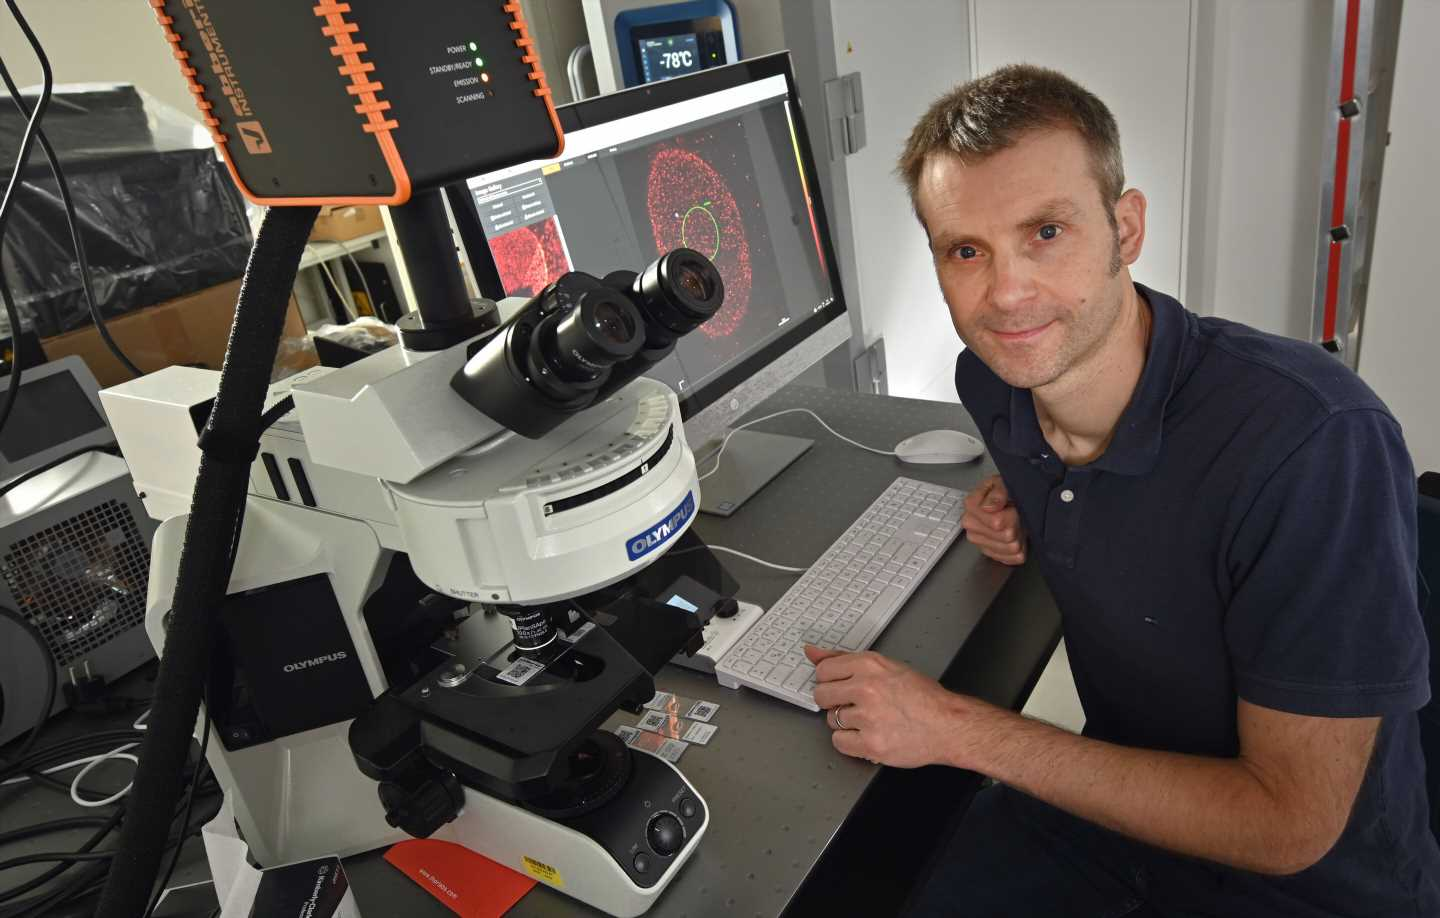 Researchers make visible how AIDS pathogens multiply in the body